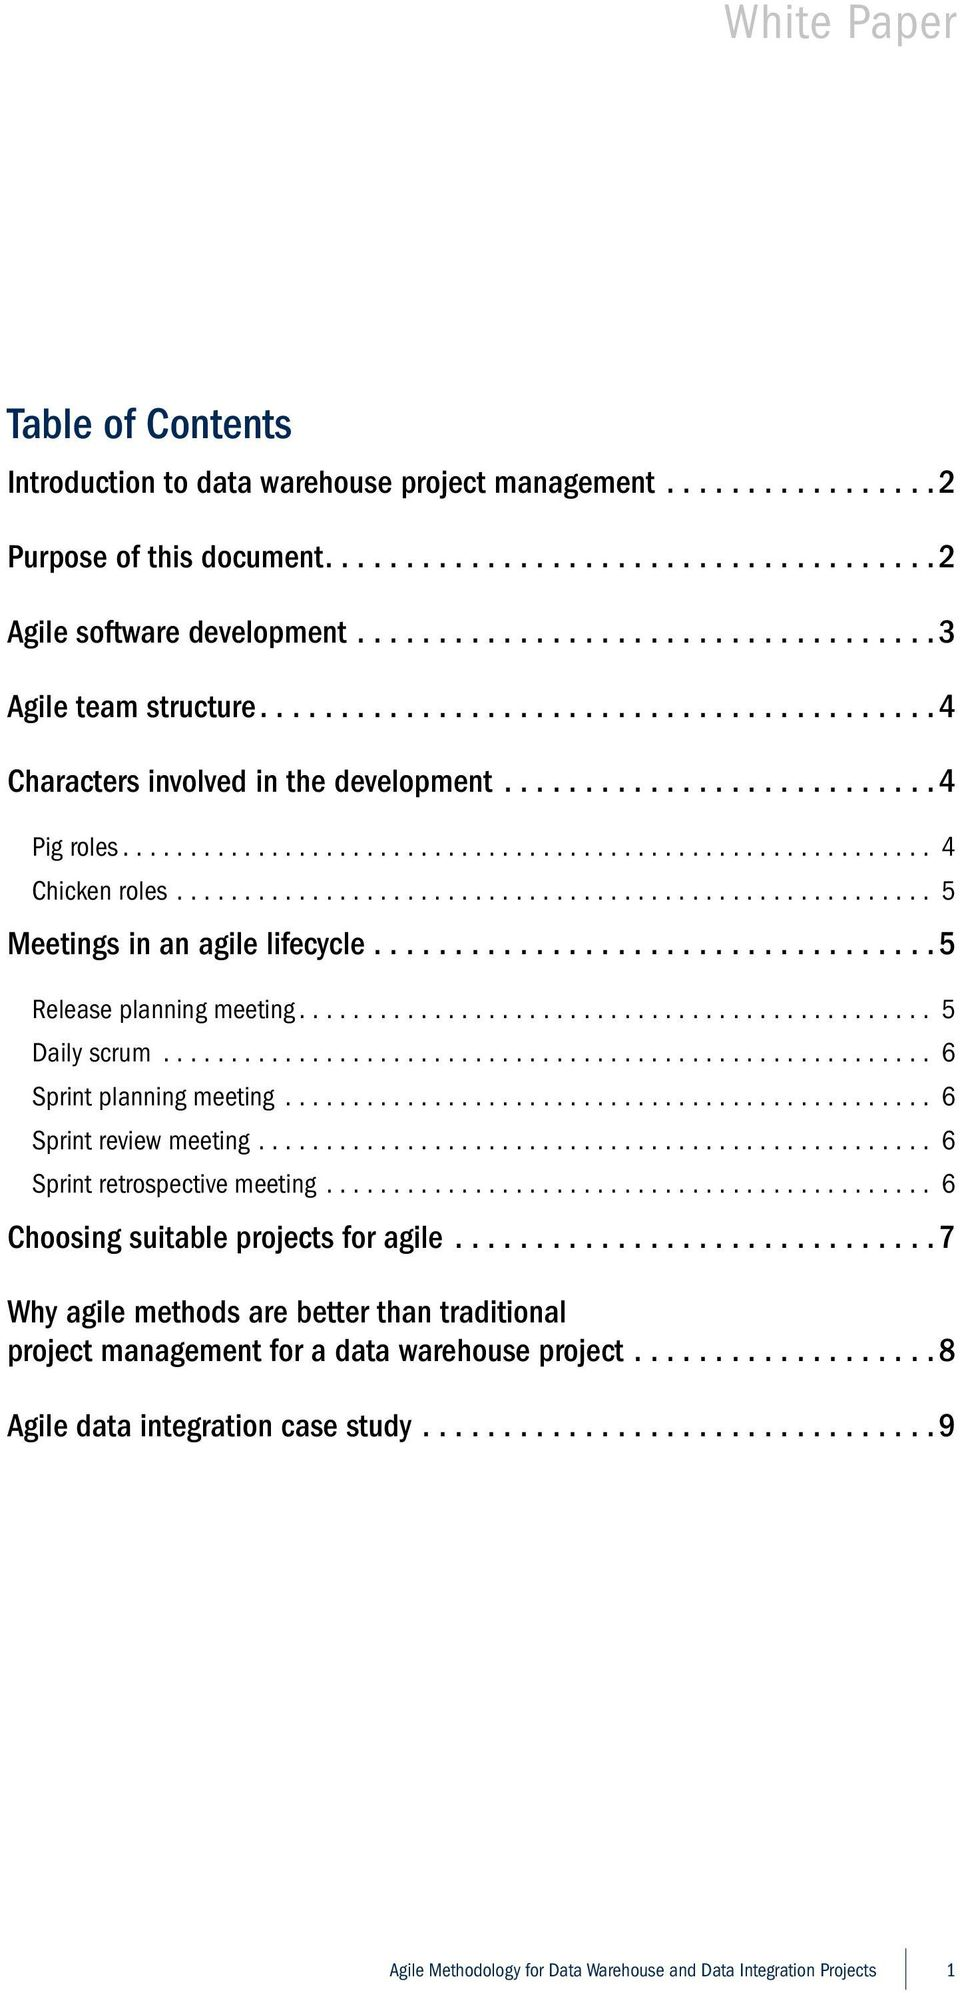 ....................................................... 5 Meetings in an agile lifecycle.................................. 5 Release planning meeting............................................... 5 Daily scrum.